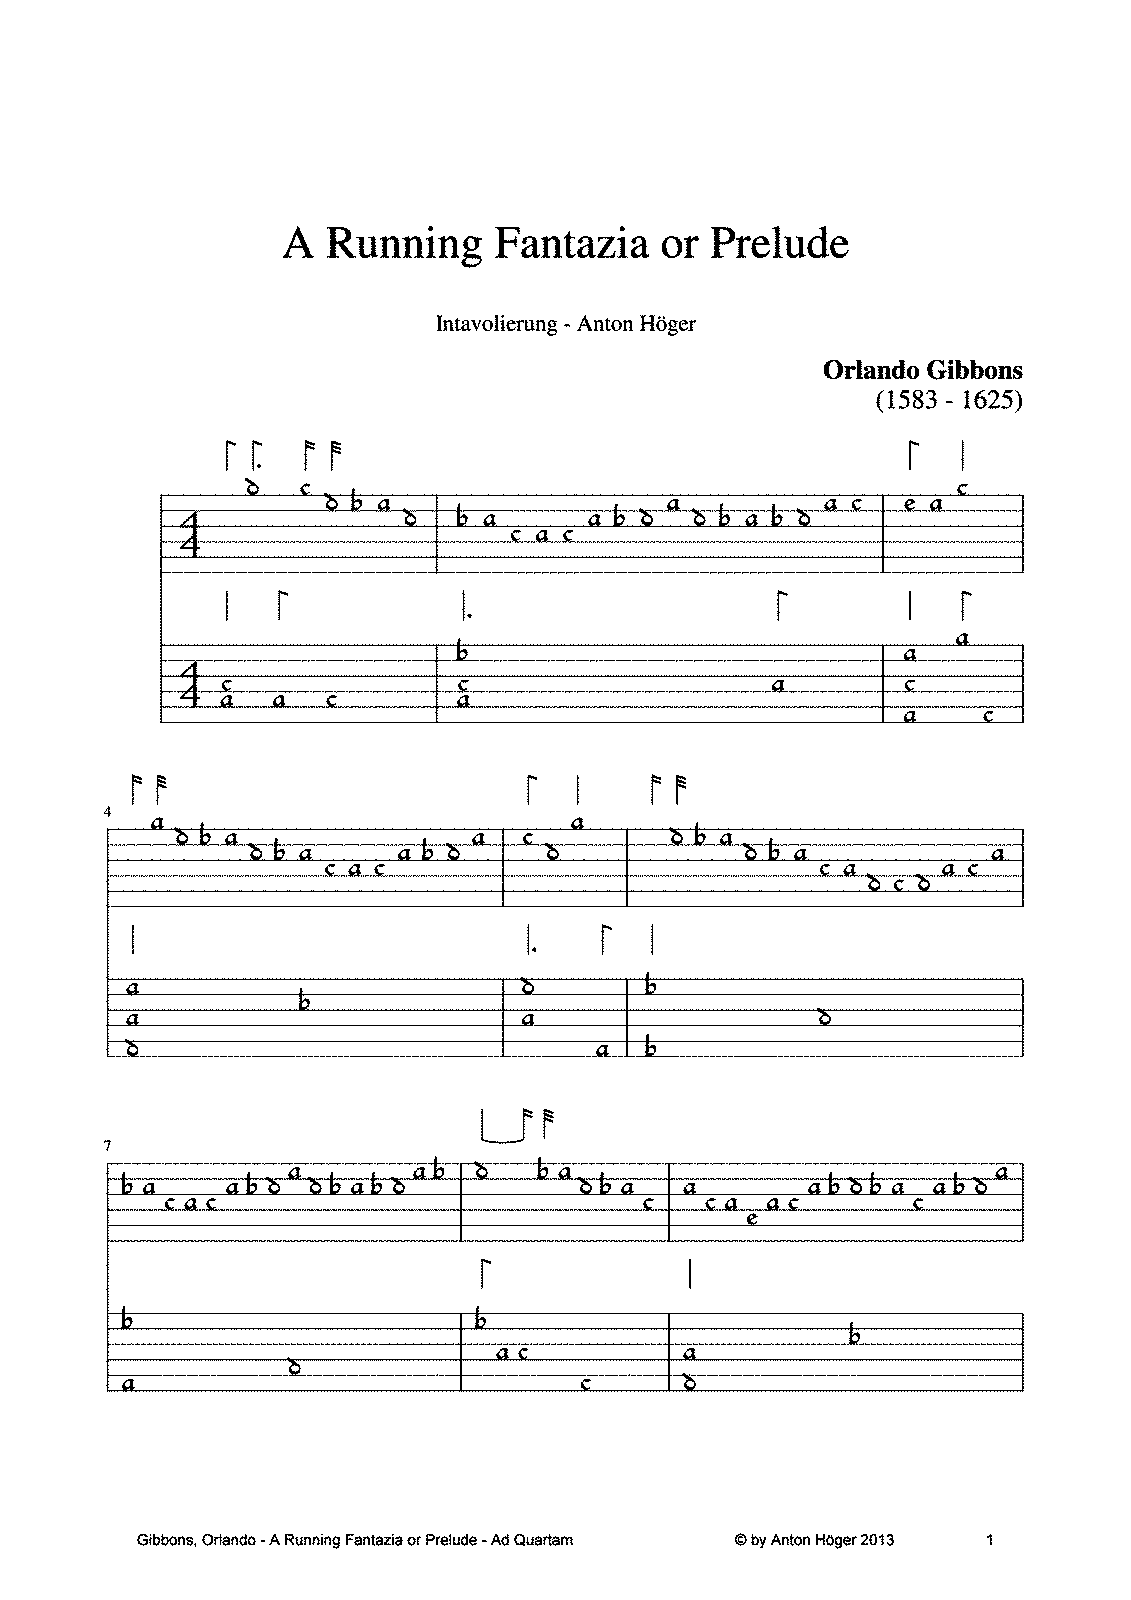 PMLP476907-Gibbons, Orlando - A Running Fantazia or Prelude.pdf